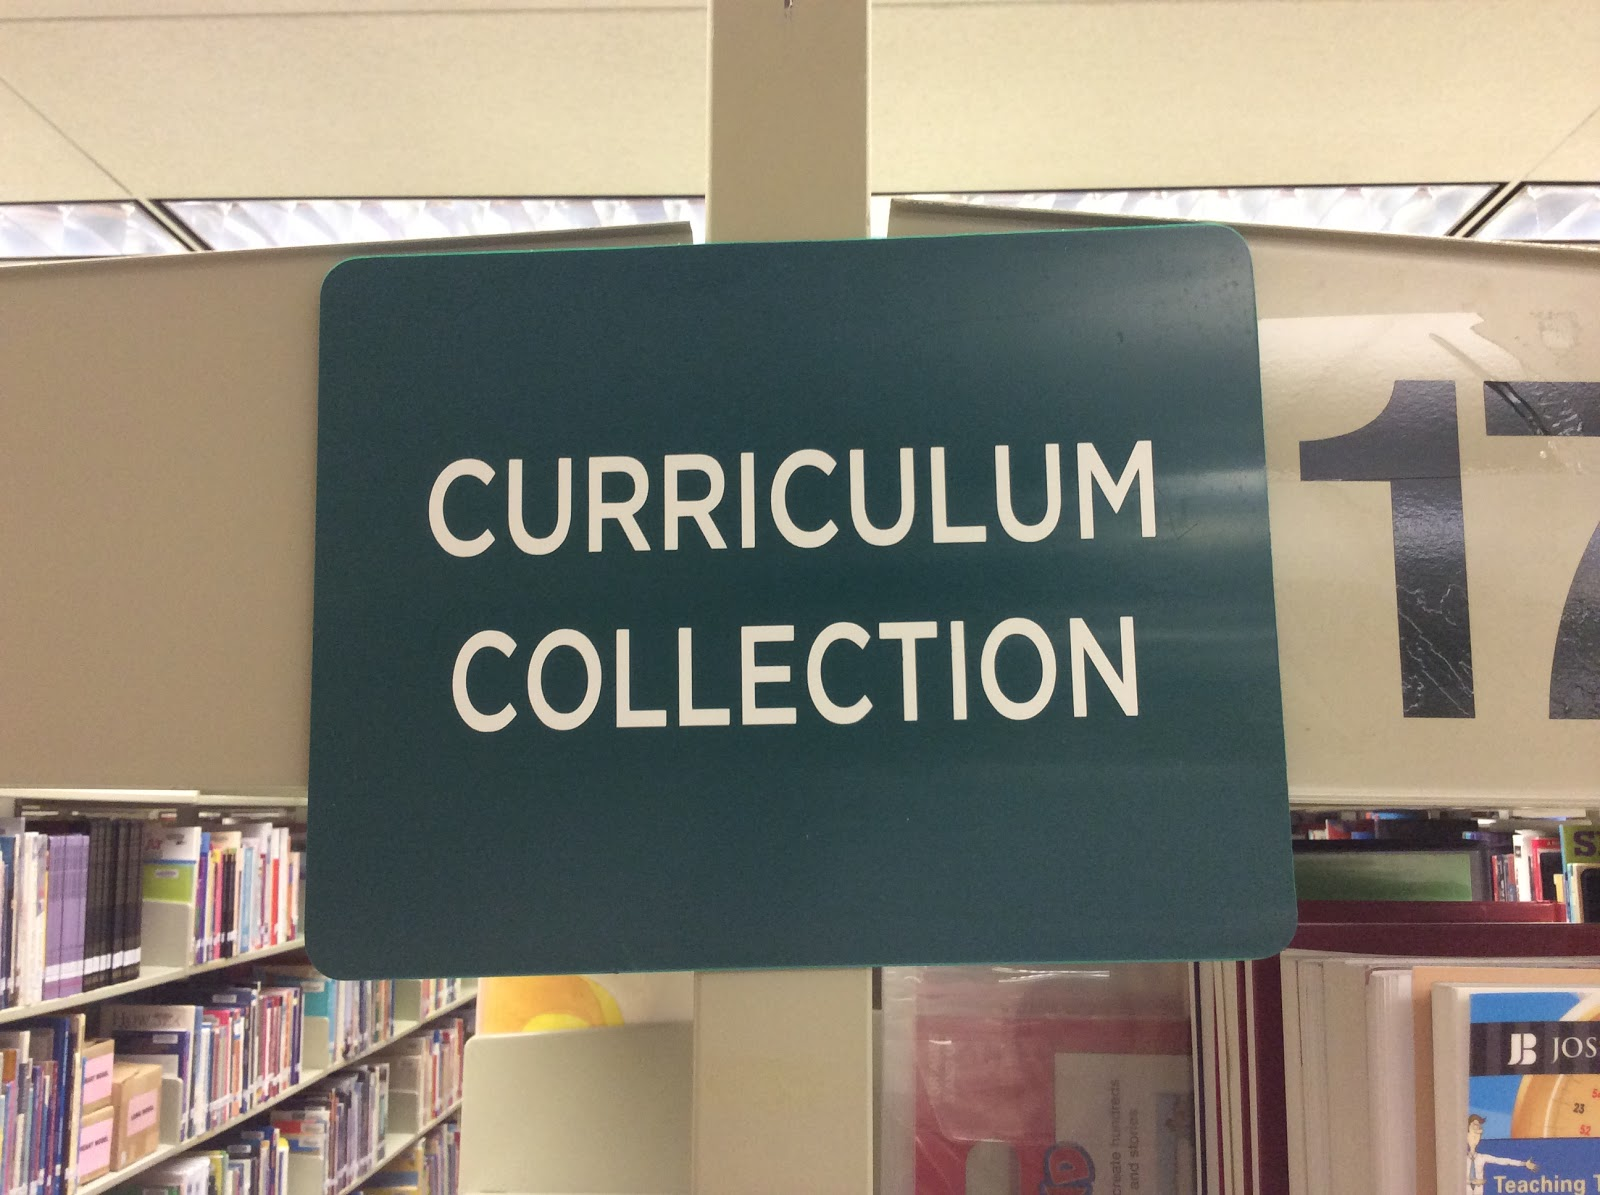 curriculum collection